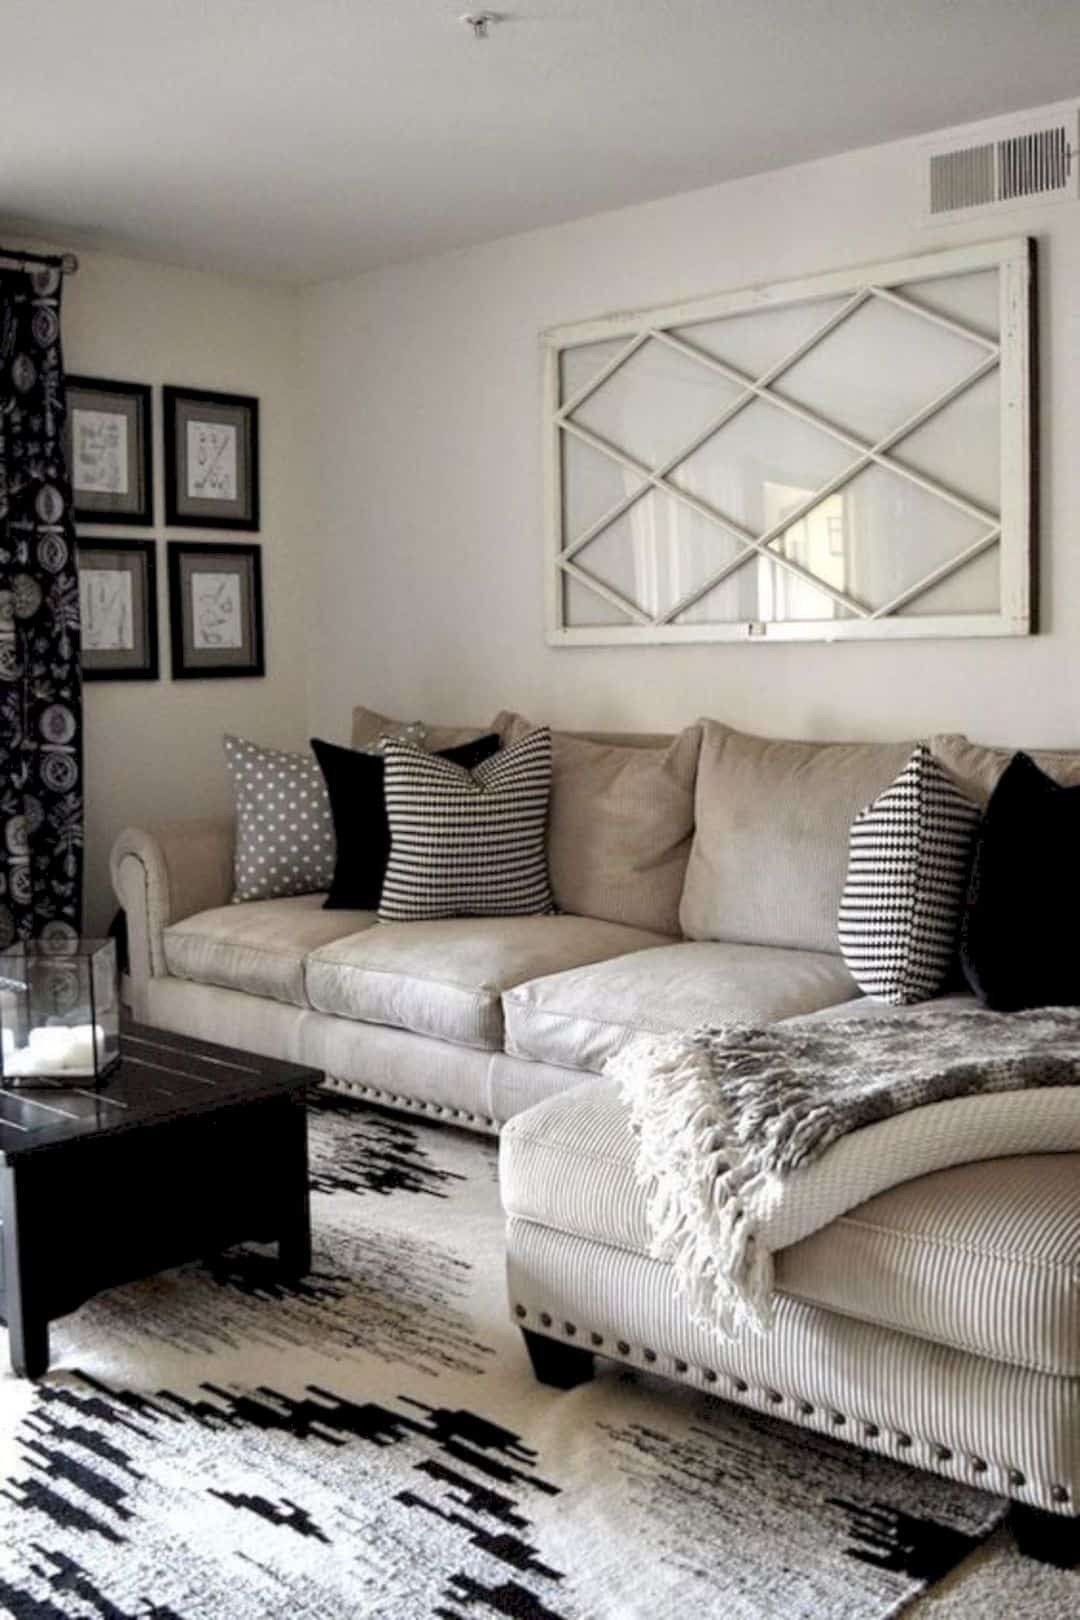 Living Room Wall Decorating Ideas 16 Magnificent Living Room Walls Decorating Ideas